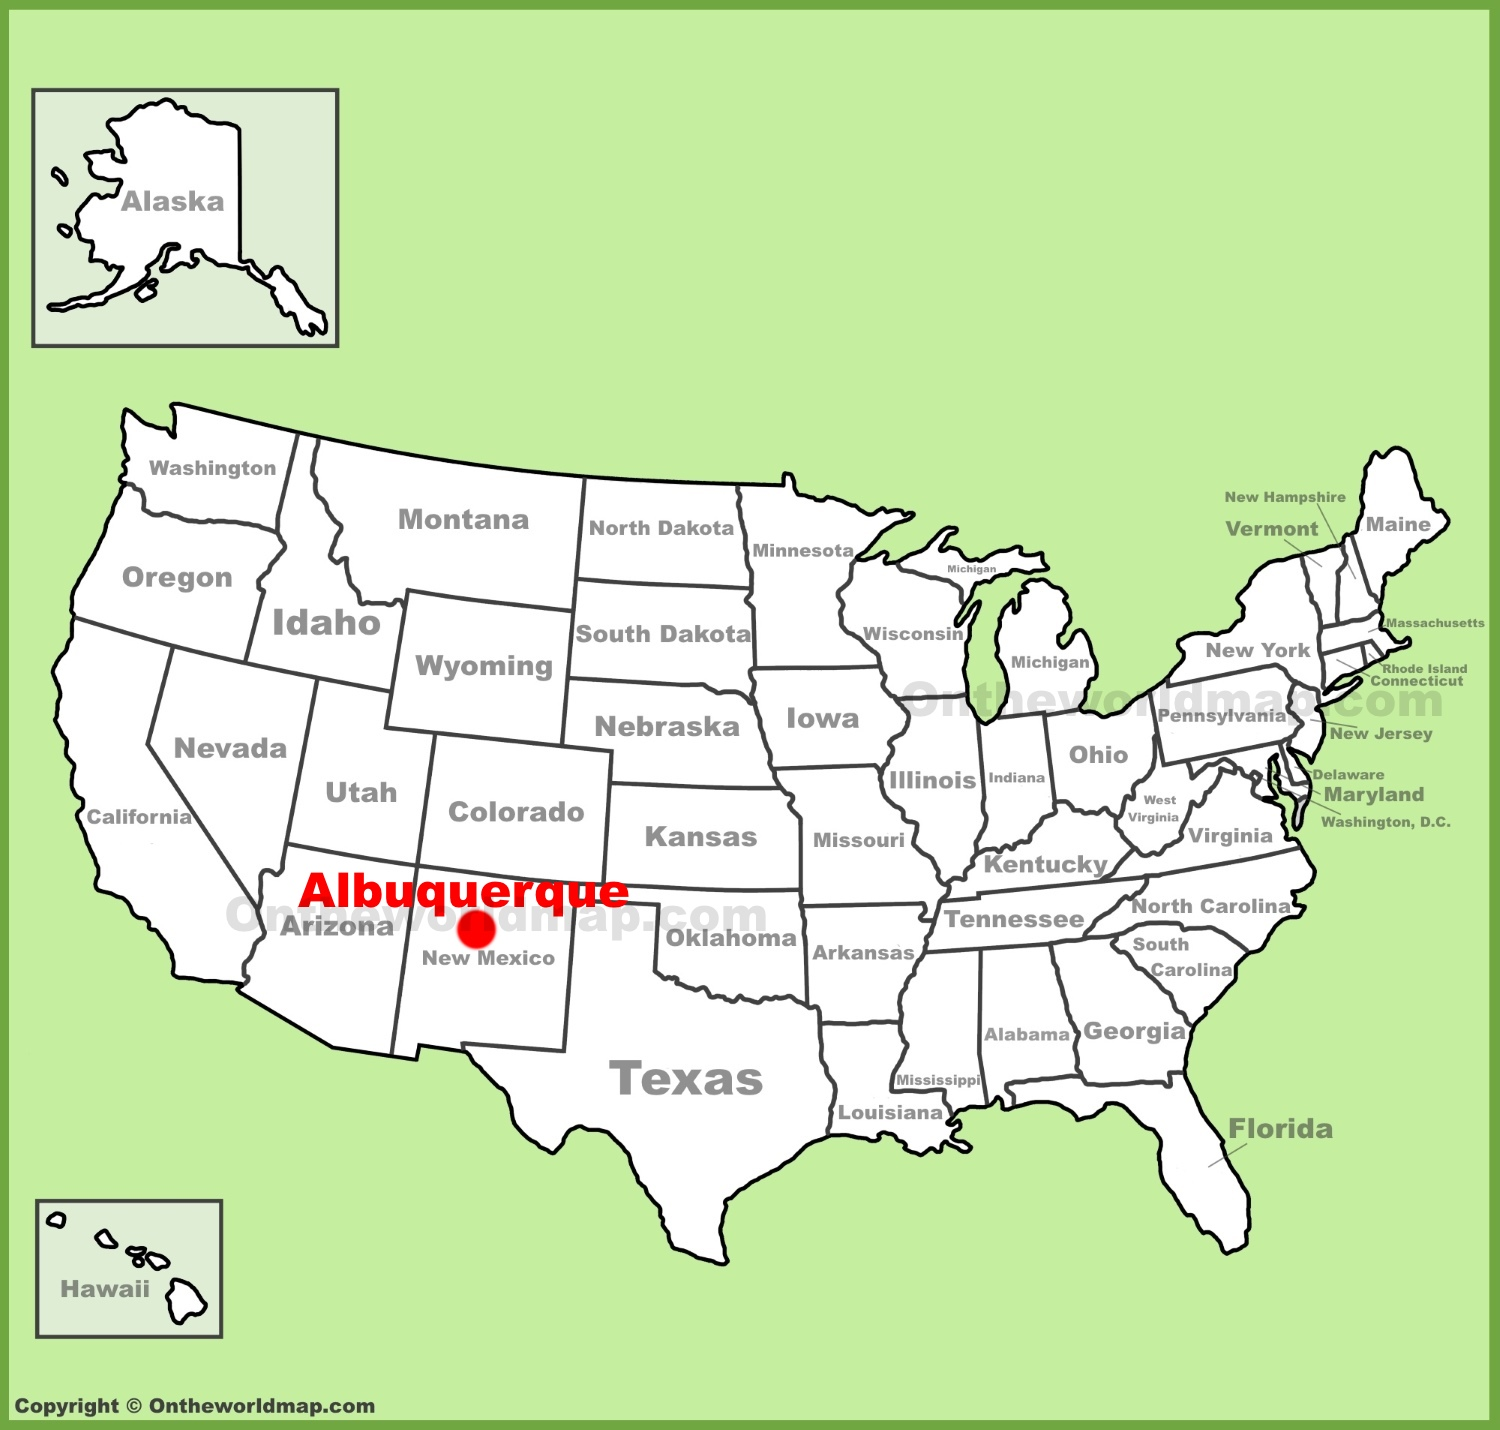 Albuquerque location on the U.S. Map